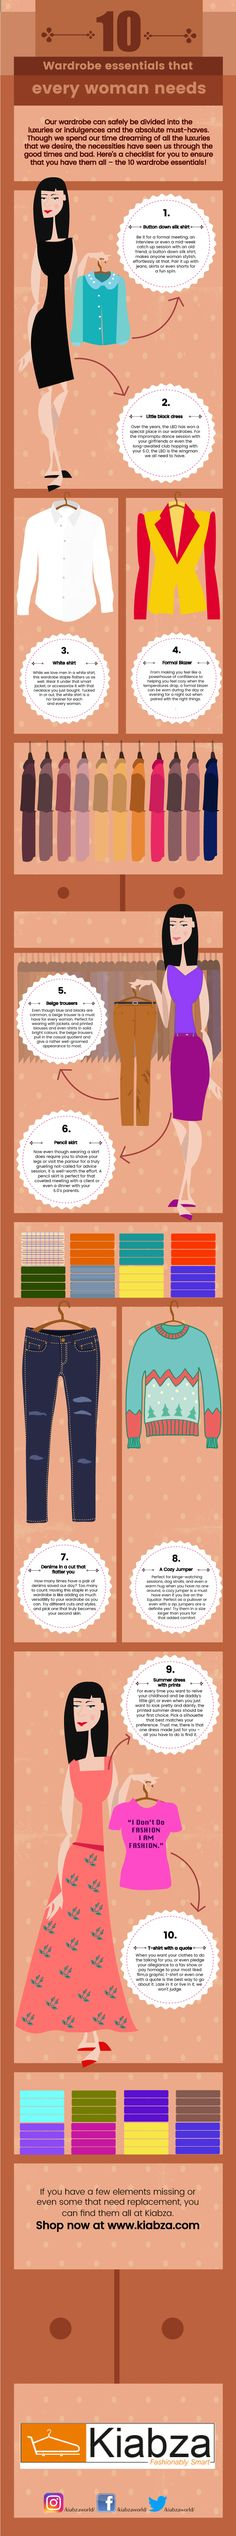 Our wardrobe can safely be divided into the luxuries or indulgences and the absolute must-haves. Though we spend our time dreaming of all the luxuries that we desire, the necessities have seen us through the good times and bad. here's a checklist for you to ensure that you have them all- the 10 wardrobe essentials!